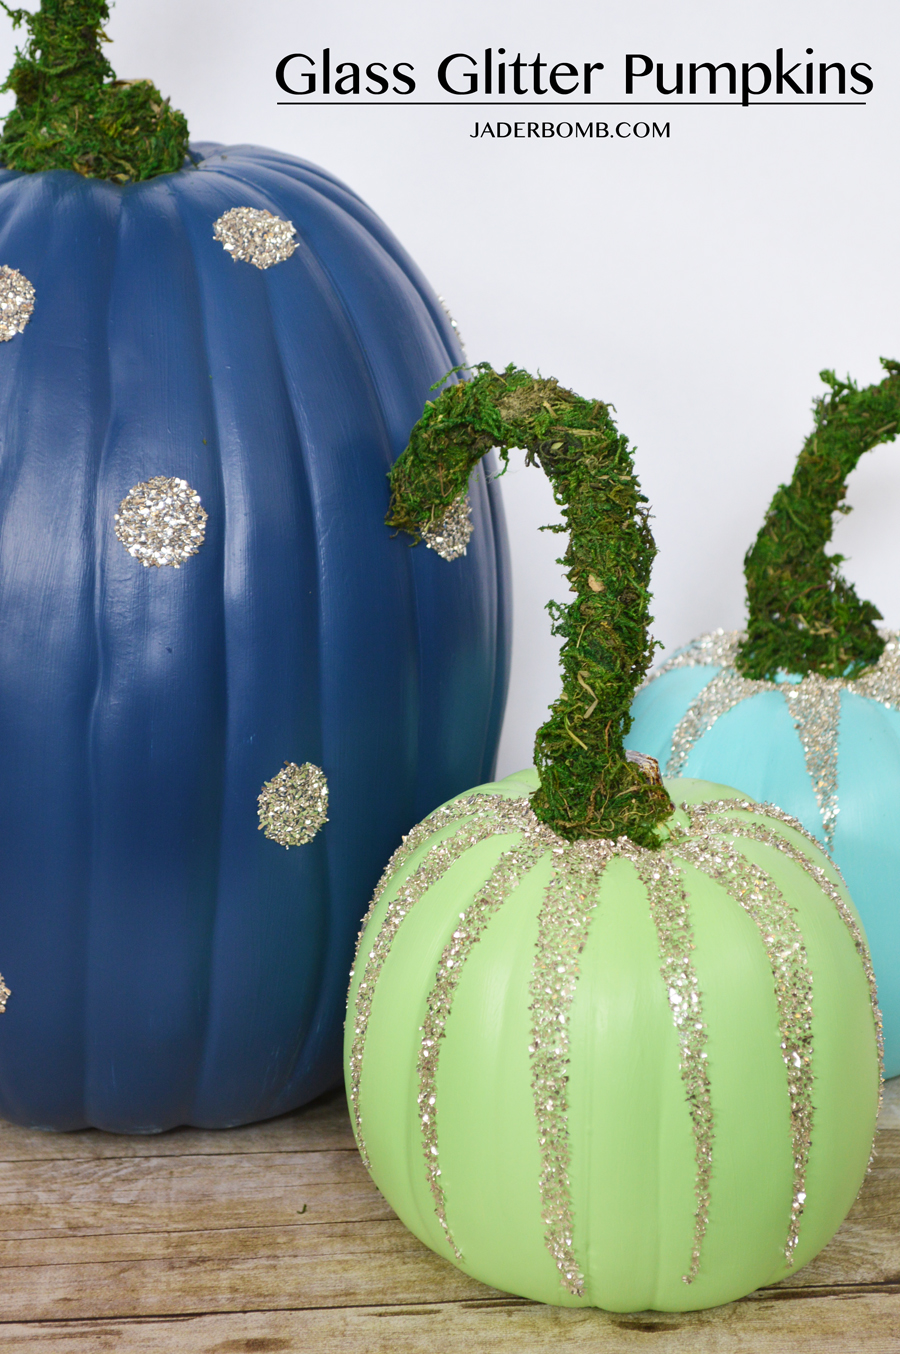 glass glitter pumpkins